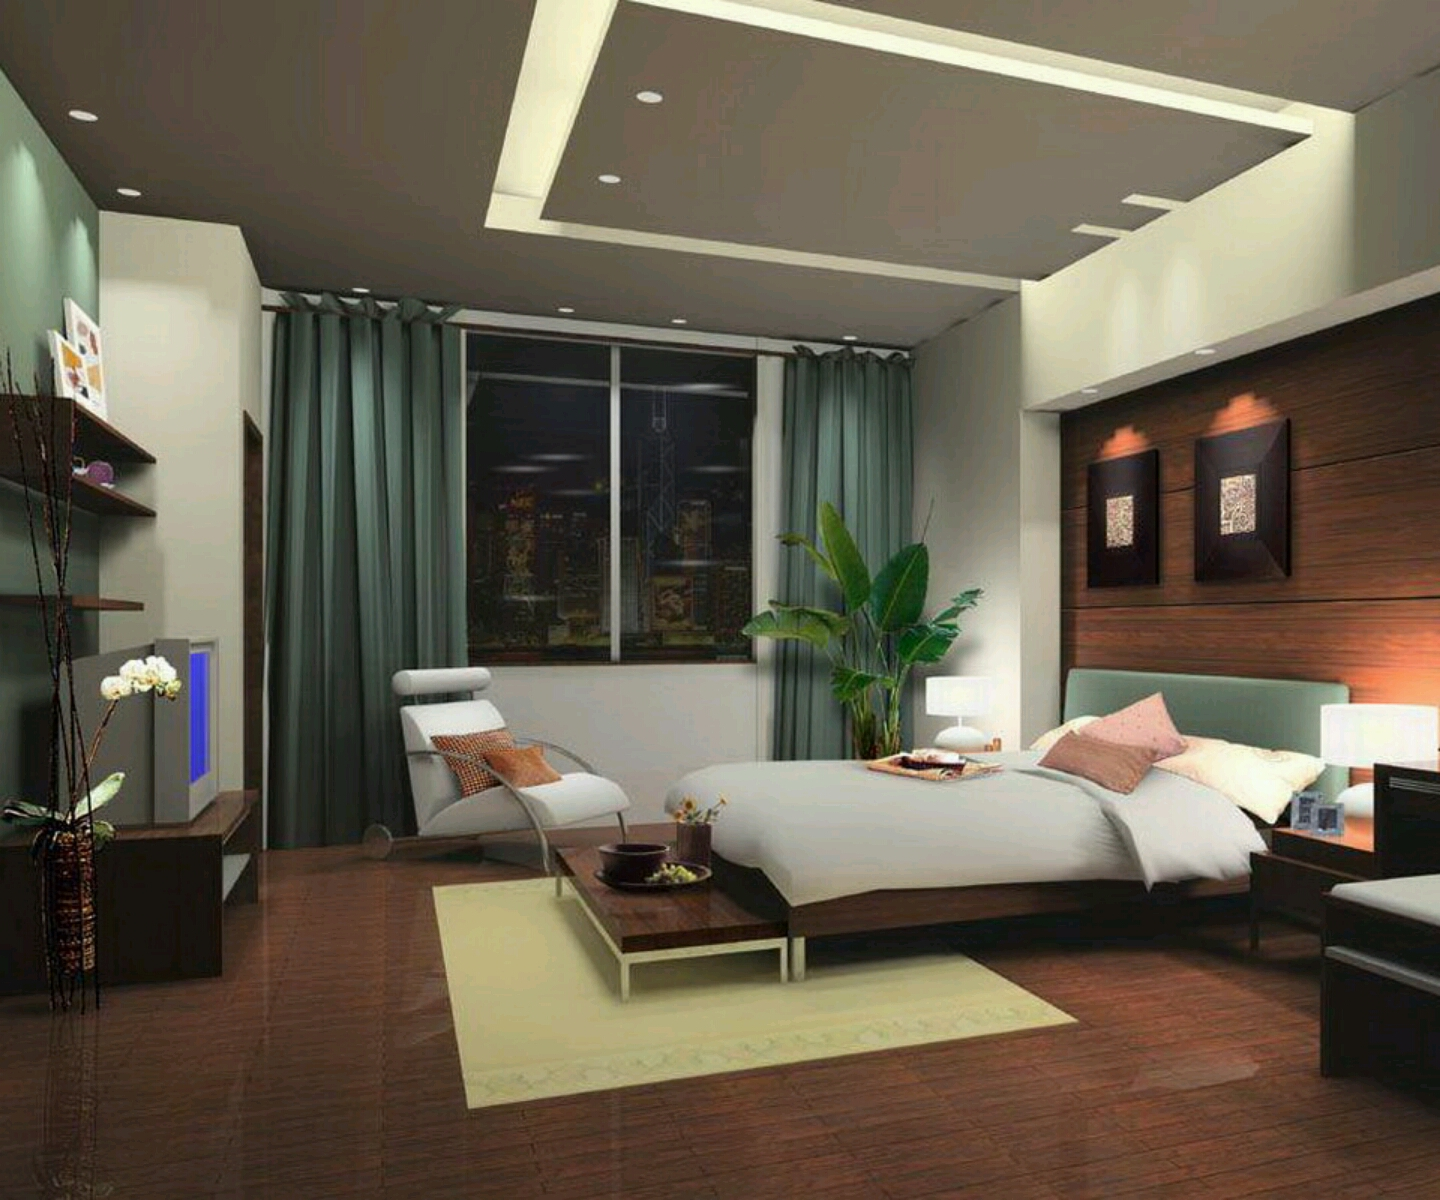 New home designs latest modern bedrooms designs best ideas for Latest ideas for home decor